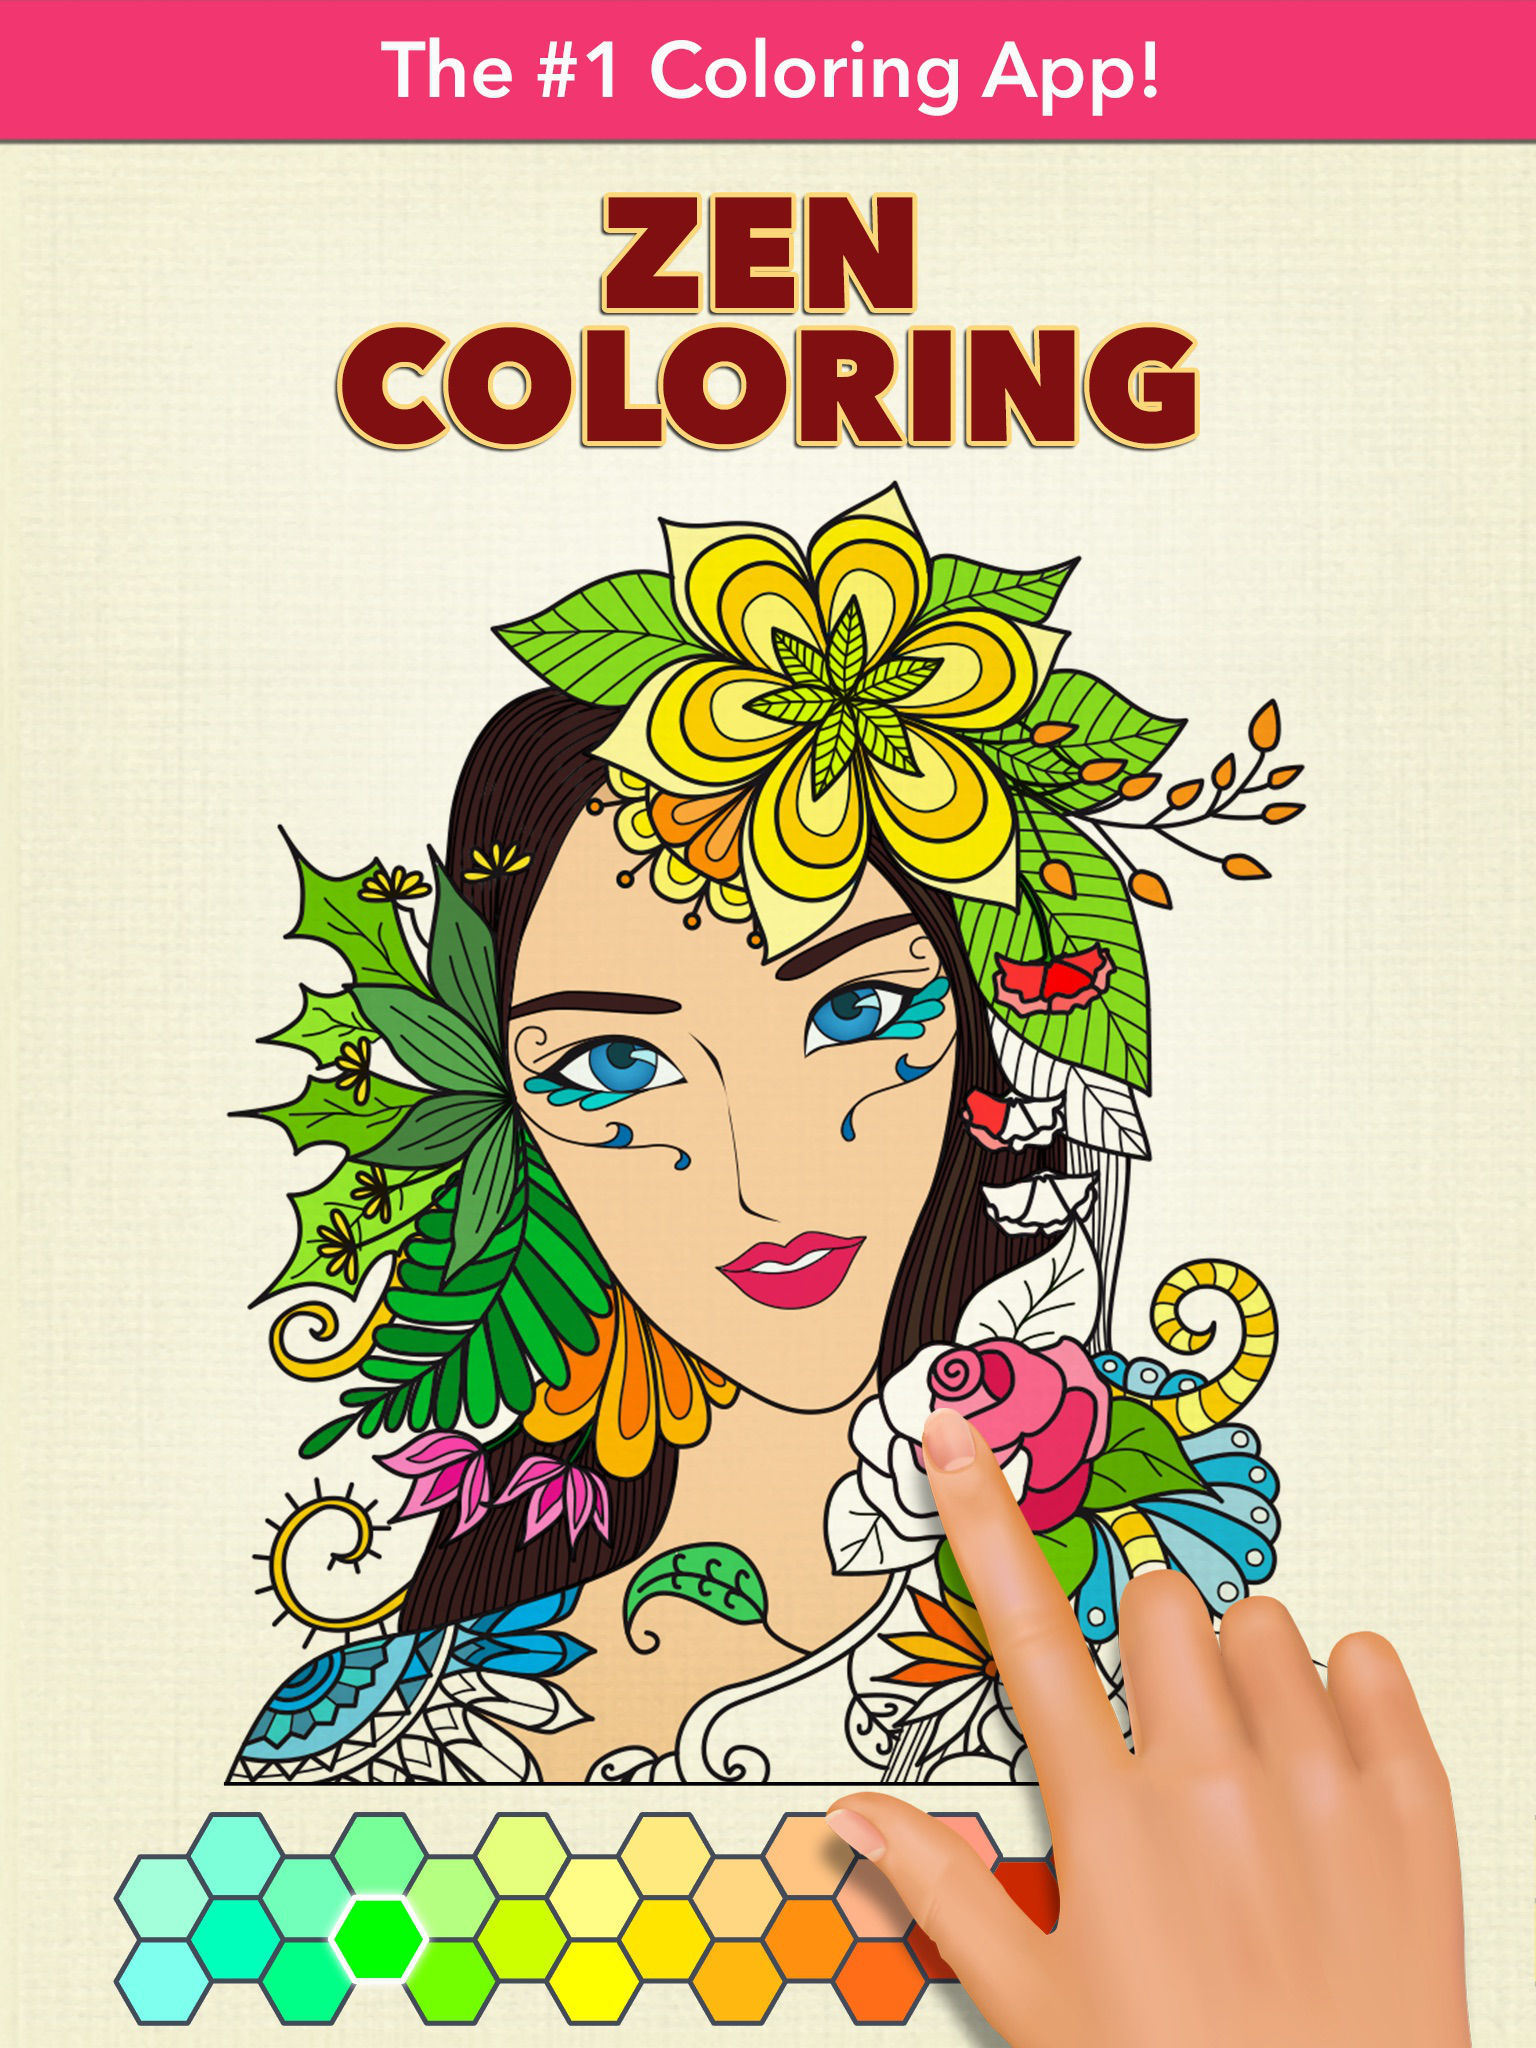 Zen coloring books for adults app - Discover Today The Anti Stress Power Of Color Therapy On Your Iphone Or Ipad App Description